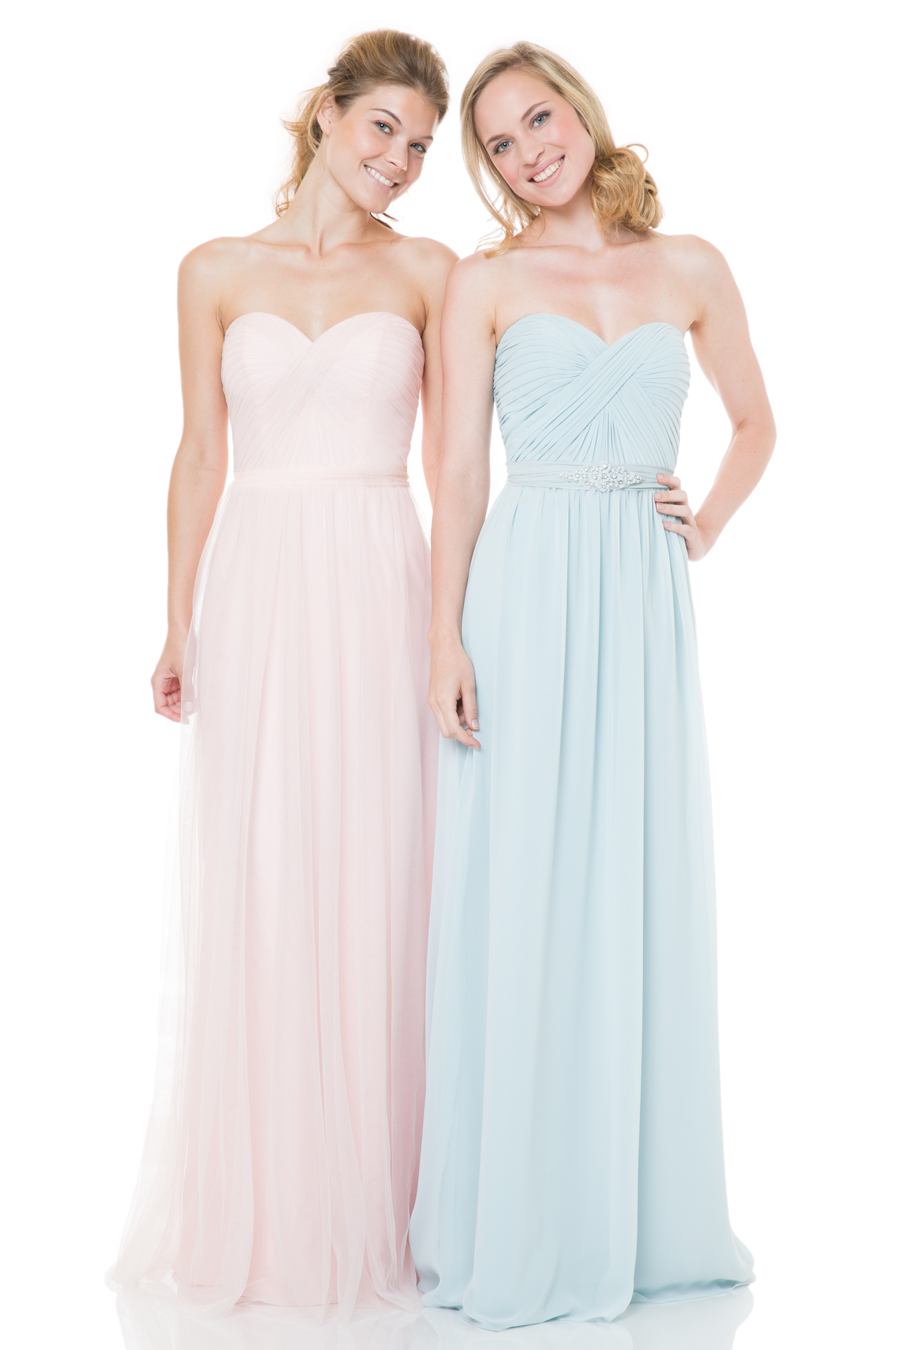 Style 1500 bridesmaid dresses evening gowns flower girl shirred sweetheart bodice natural waist gown comes with simple removable self tie belt ombrellifo Image collections